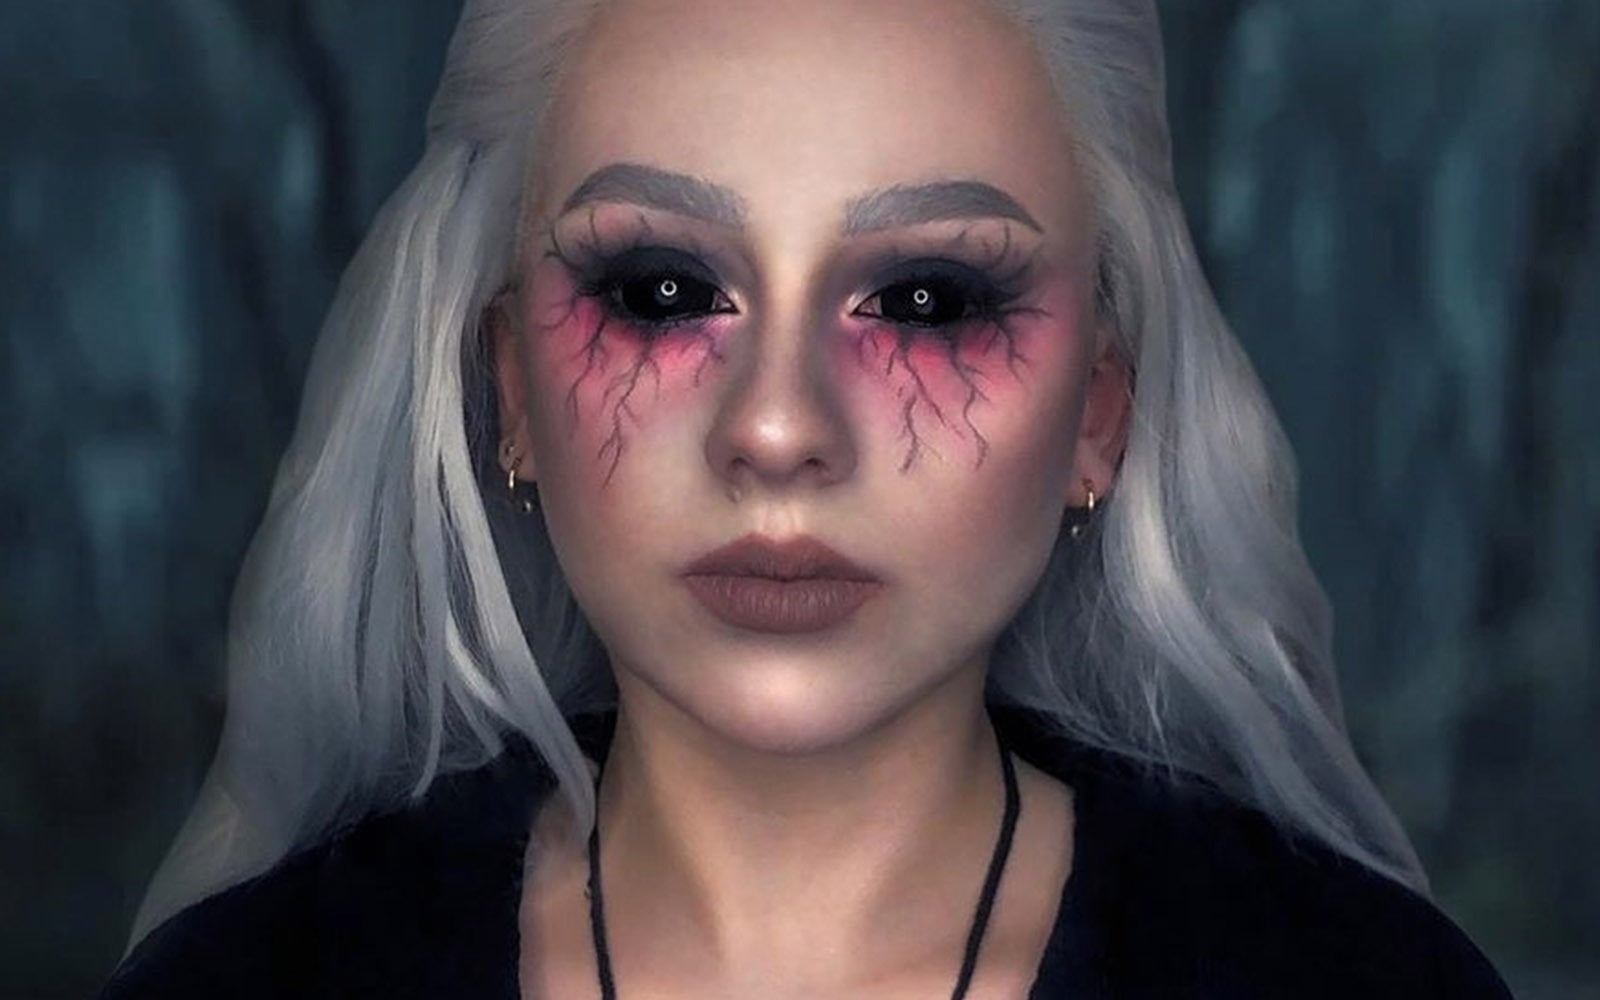 Black Colored Out Contacts | Black Sclera Lenses | Halloween Black Con,